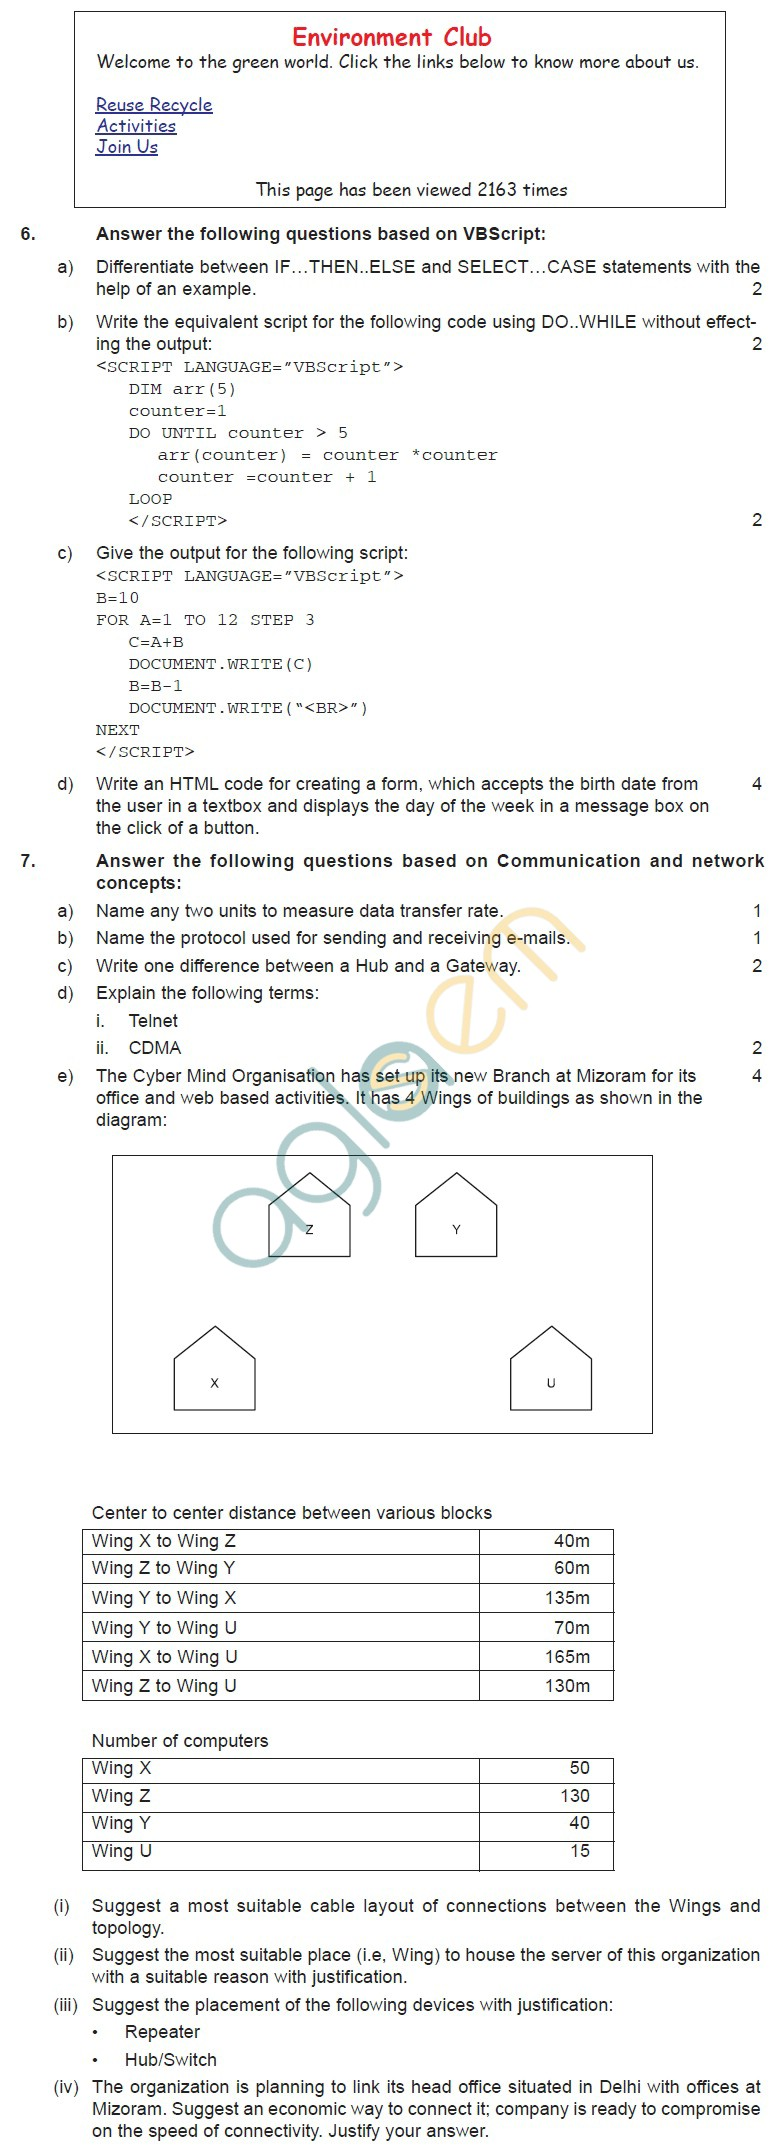 CBSE Board Exam 2013 Sample Question Papers for Multimedia and Web Technology